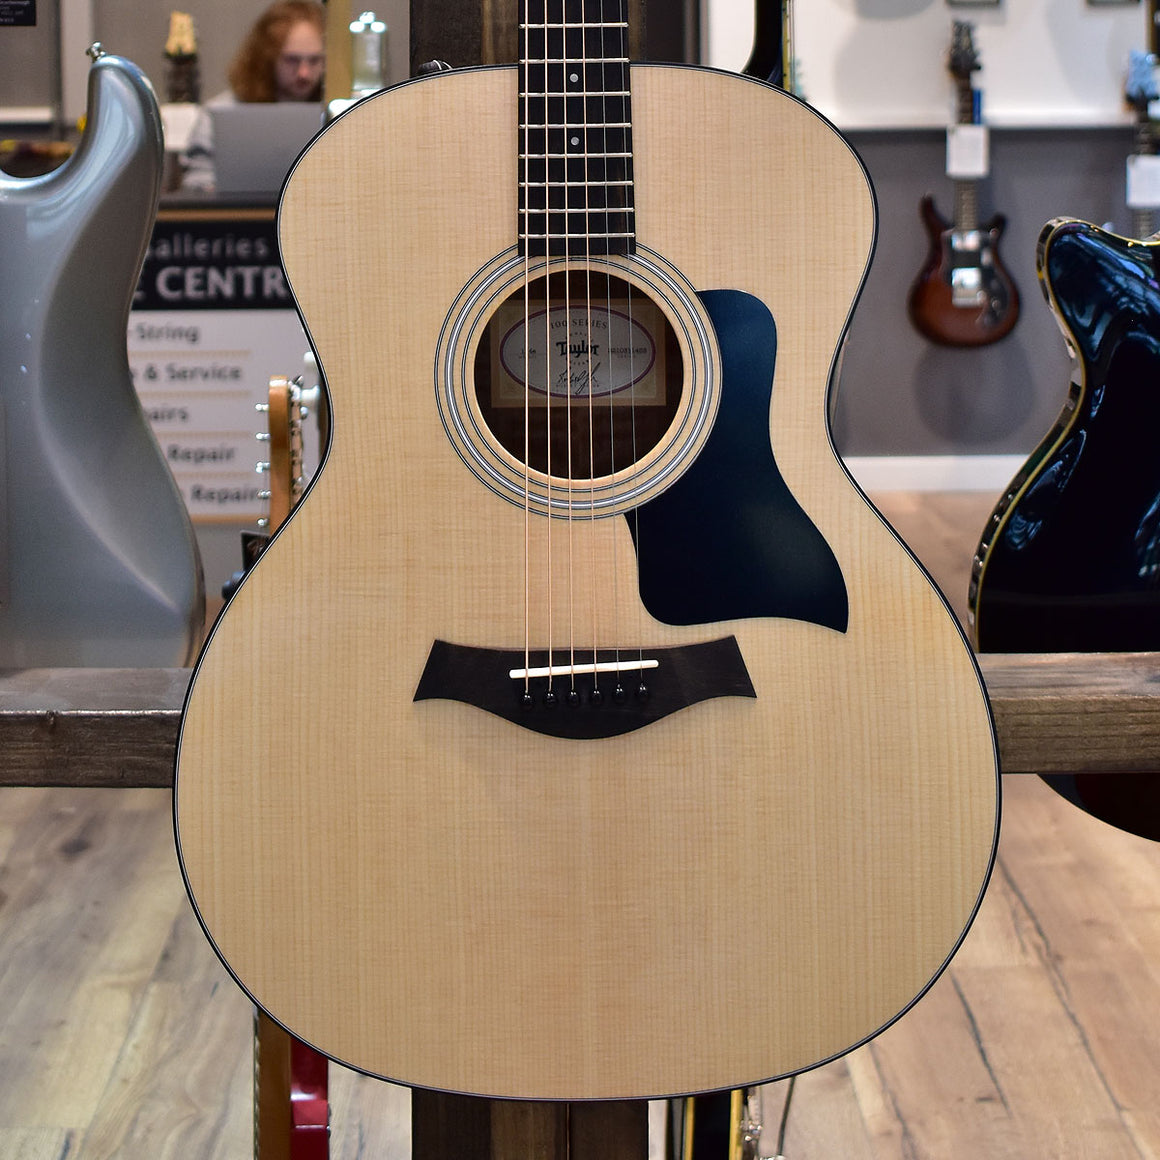 Taylor 114e Walnut/Sitka Electro Acoustic Guitar (Maple Neck) with Gig Bag